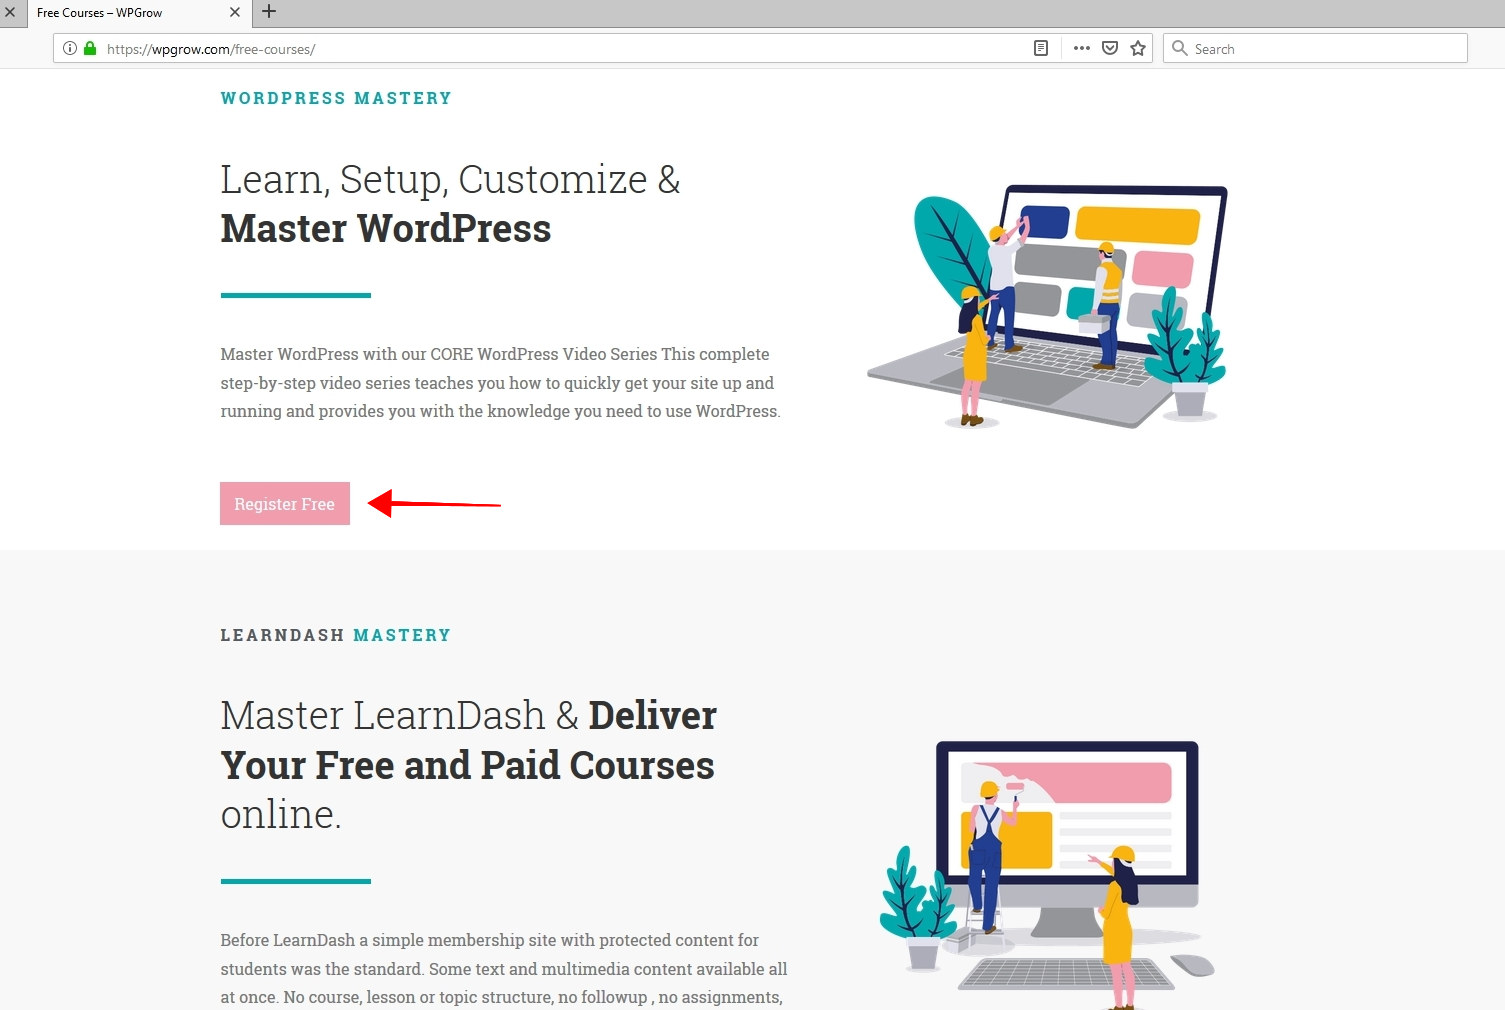 Free Pass Courses When you're just building a learning campus you'll need to start with a solid foundation. We've put together a list of the free courses that are available for all members. Free Pass Course List Follow the red arrow and select the Register Free button to take the course or create a free username and password. 3 Keys are covered. WordPress, LearnDash and ActiveCampaign Why these three? Starting - Building - Growing are the 3 keys to growing you online campus and learning business.